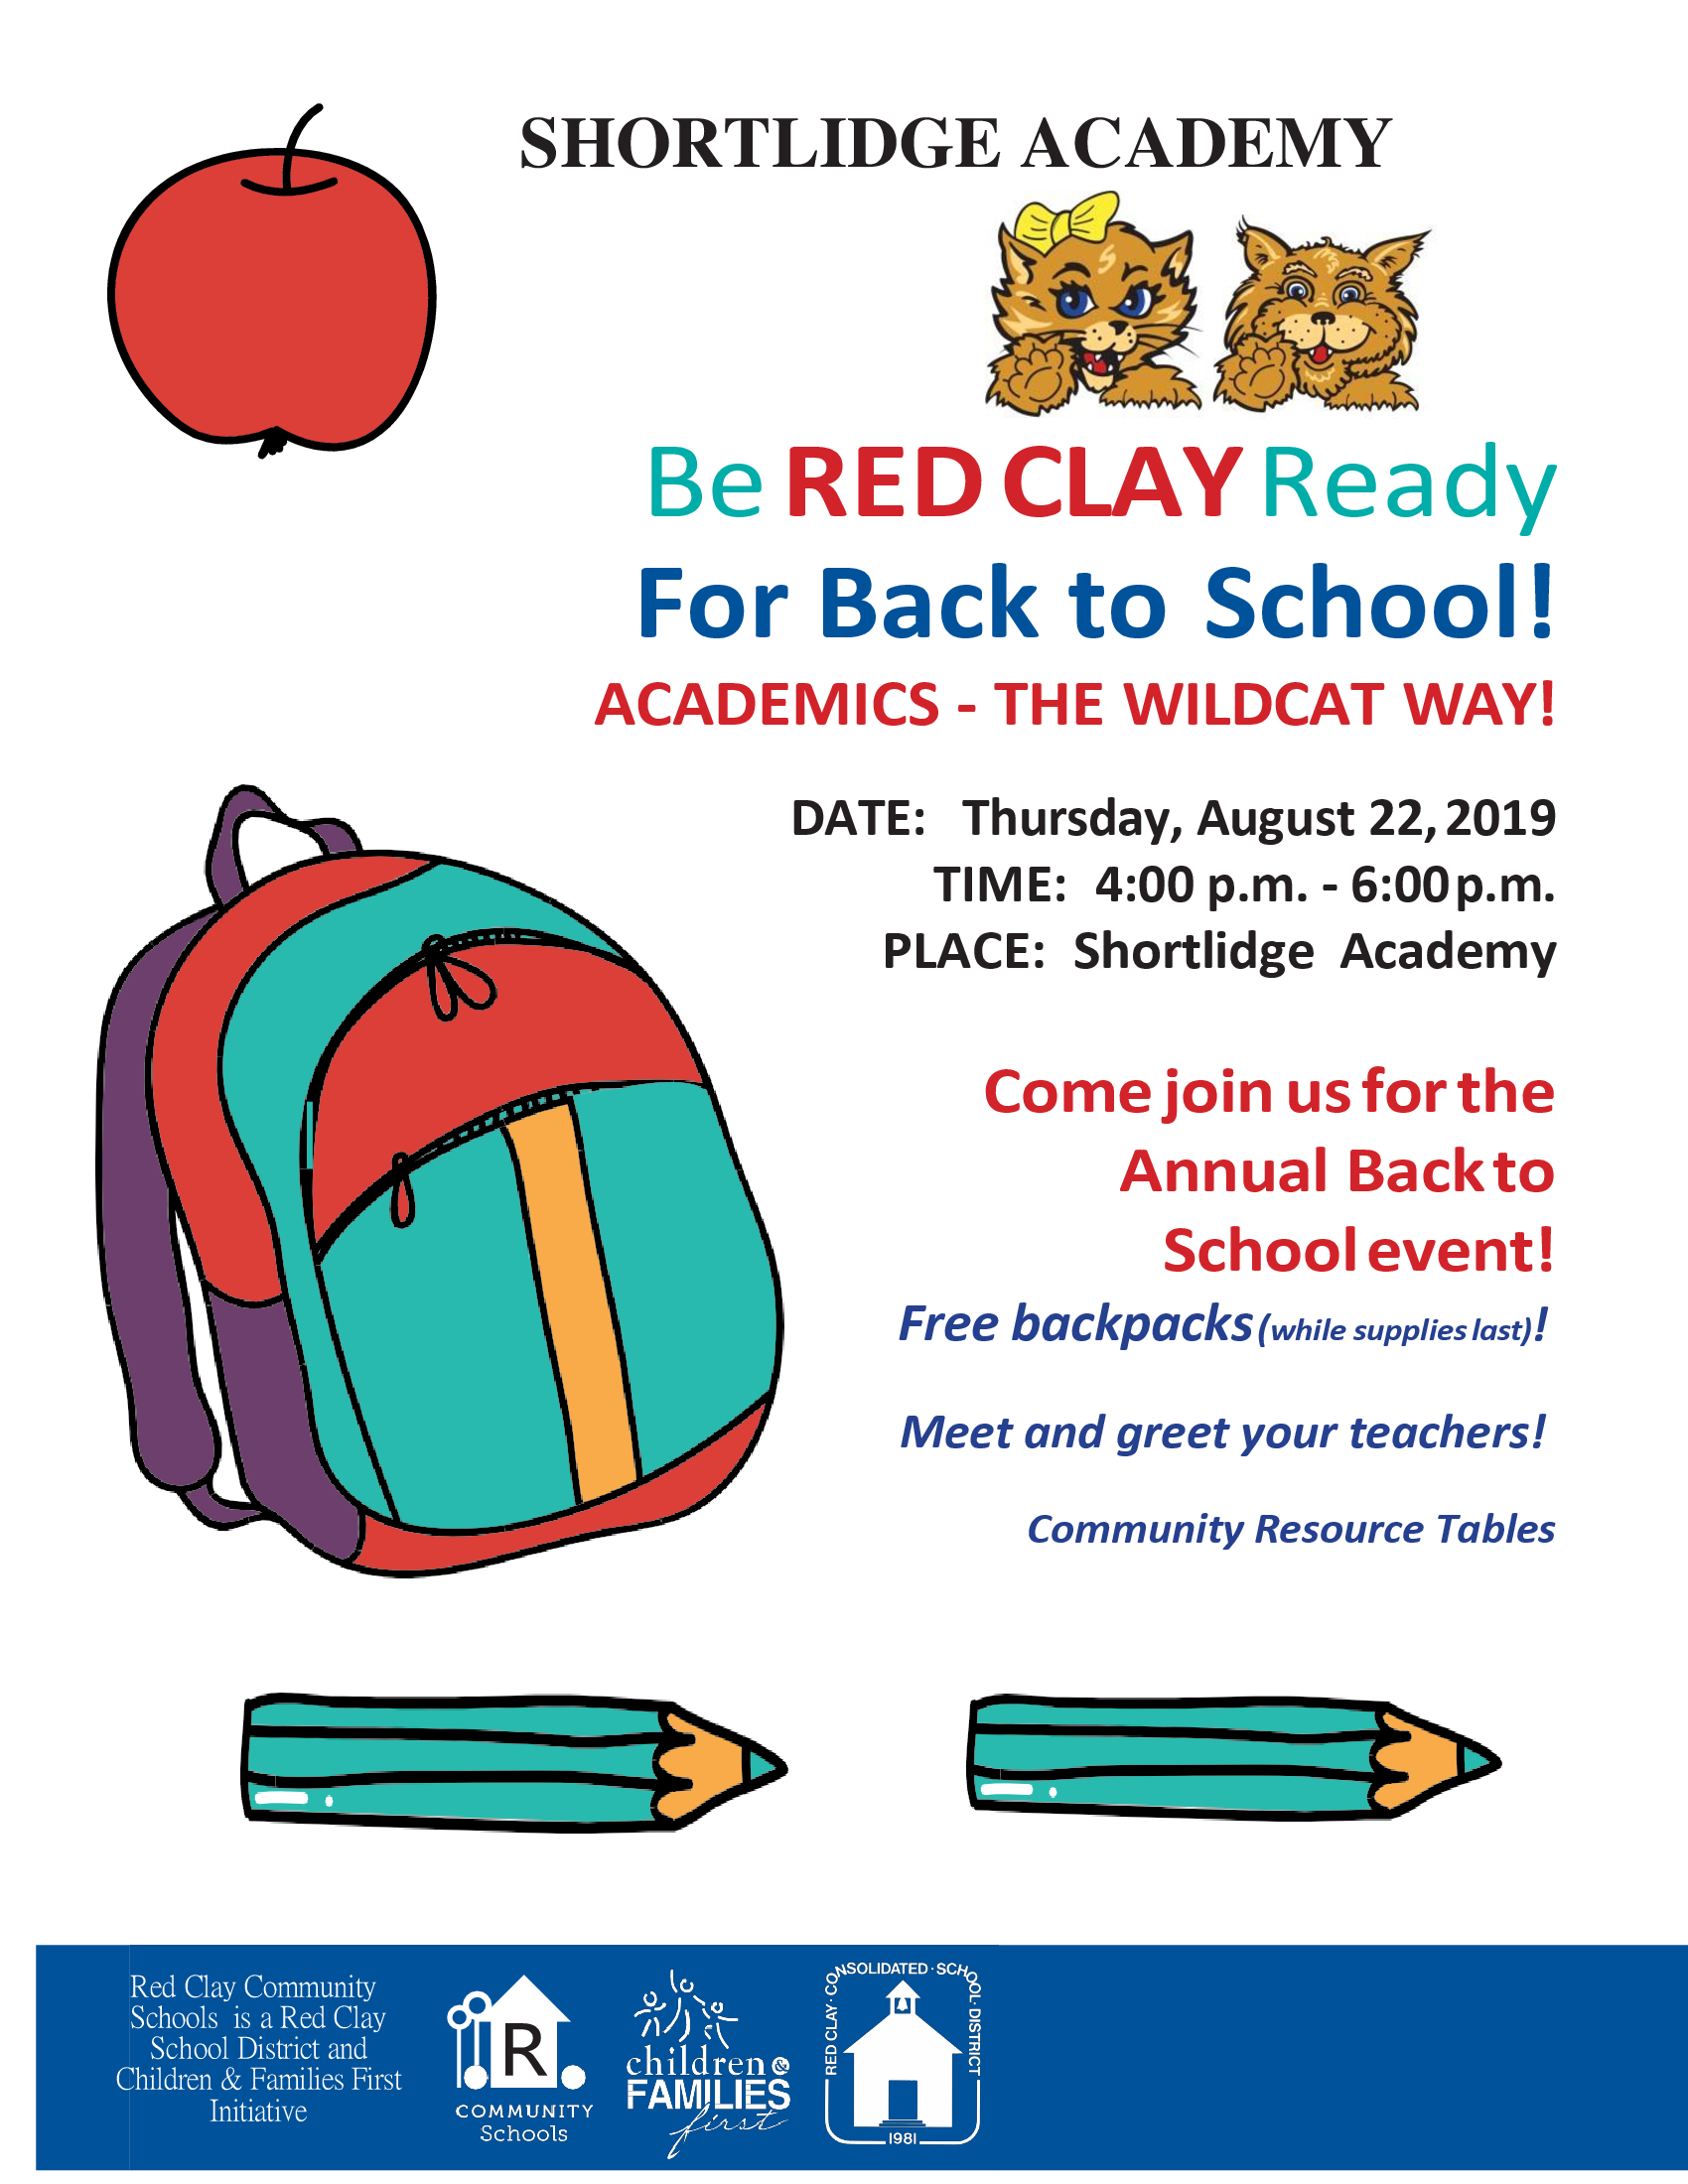 BACK TO SCHOOL - Meet the teacher day! Thursday, August 22, 2019!